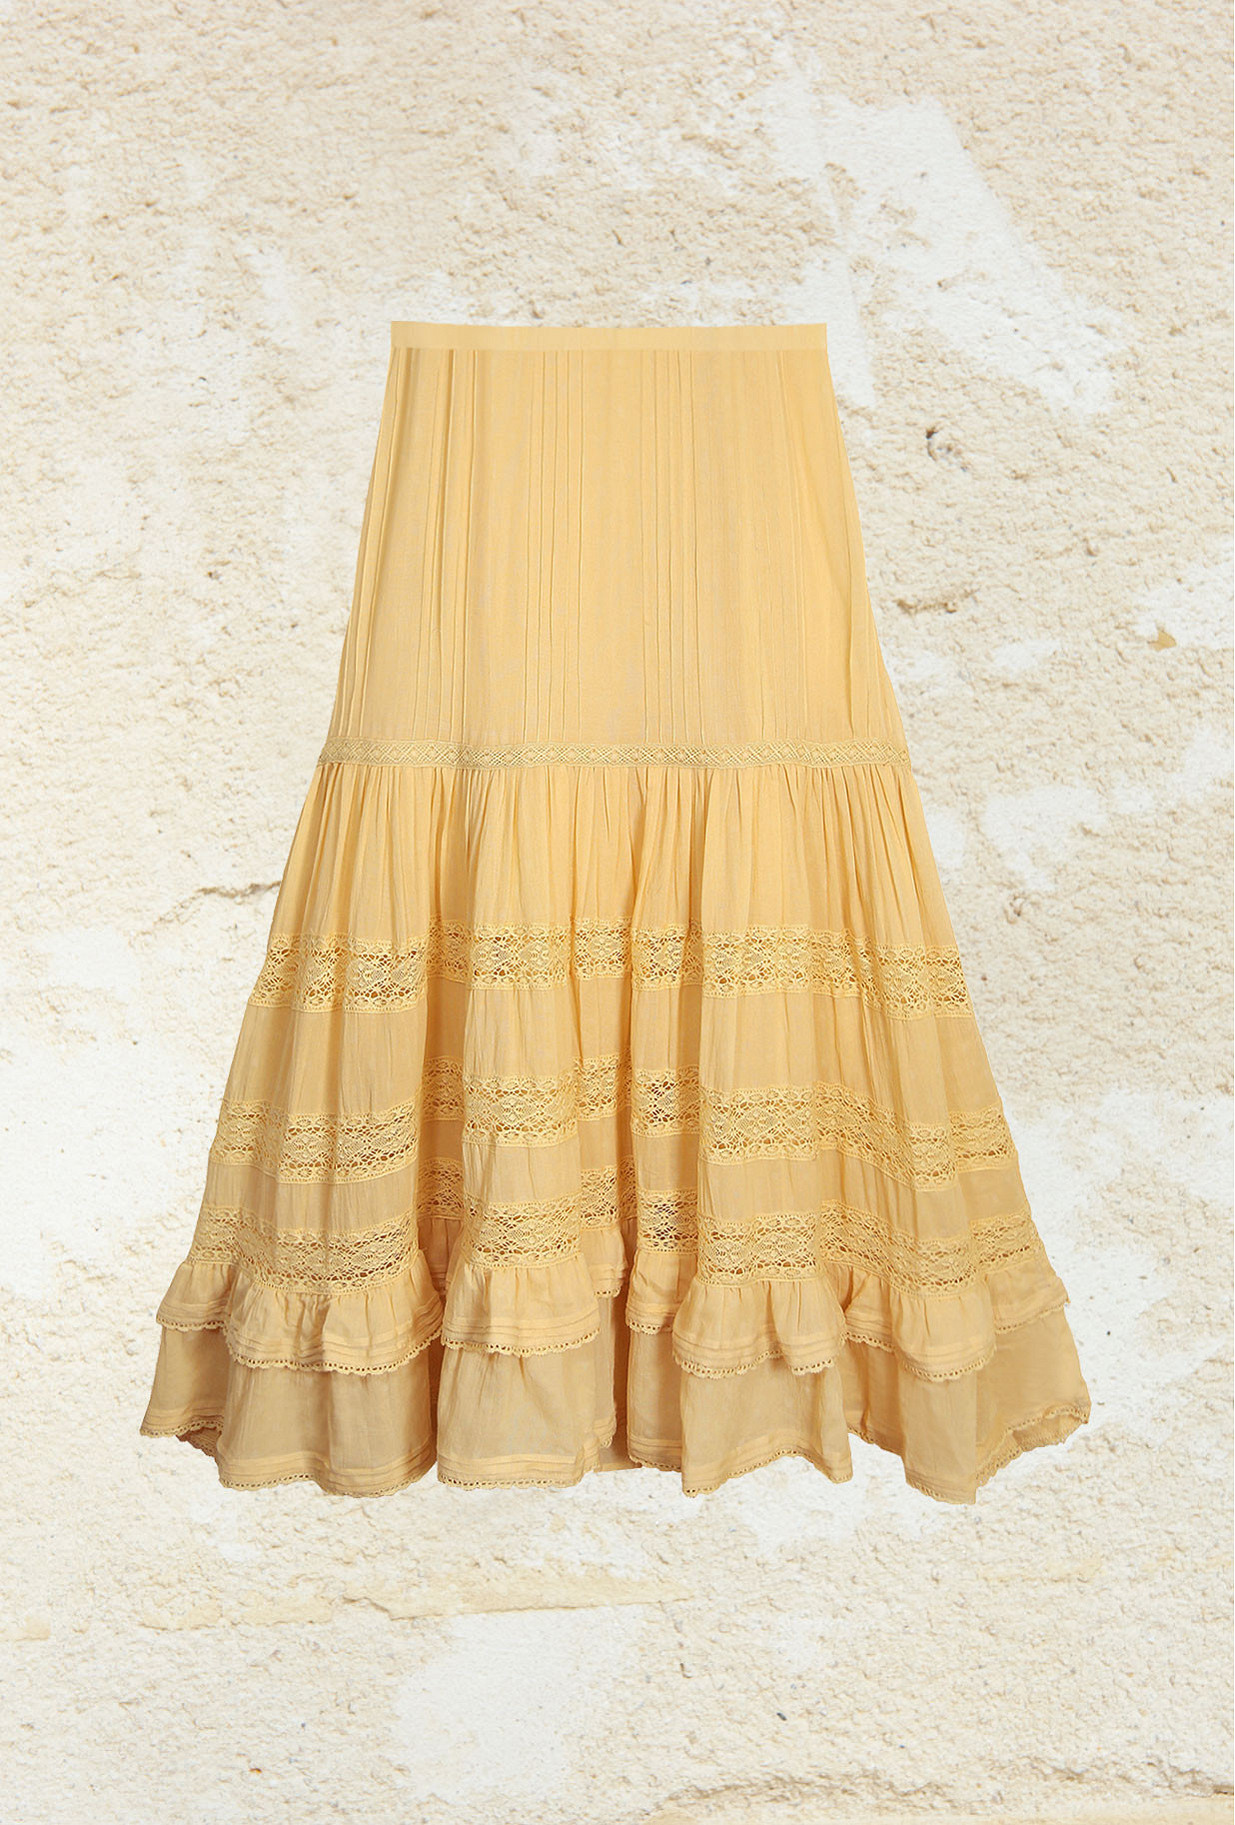 Yellow  Skirt  Gretchen Mes demoiselles fashion clothes designer Paris